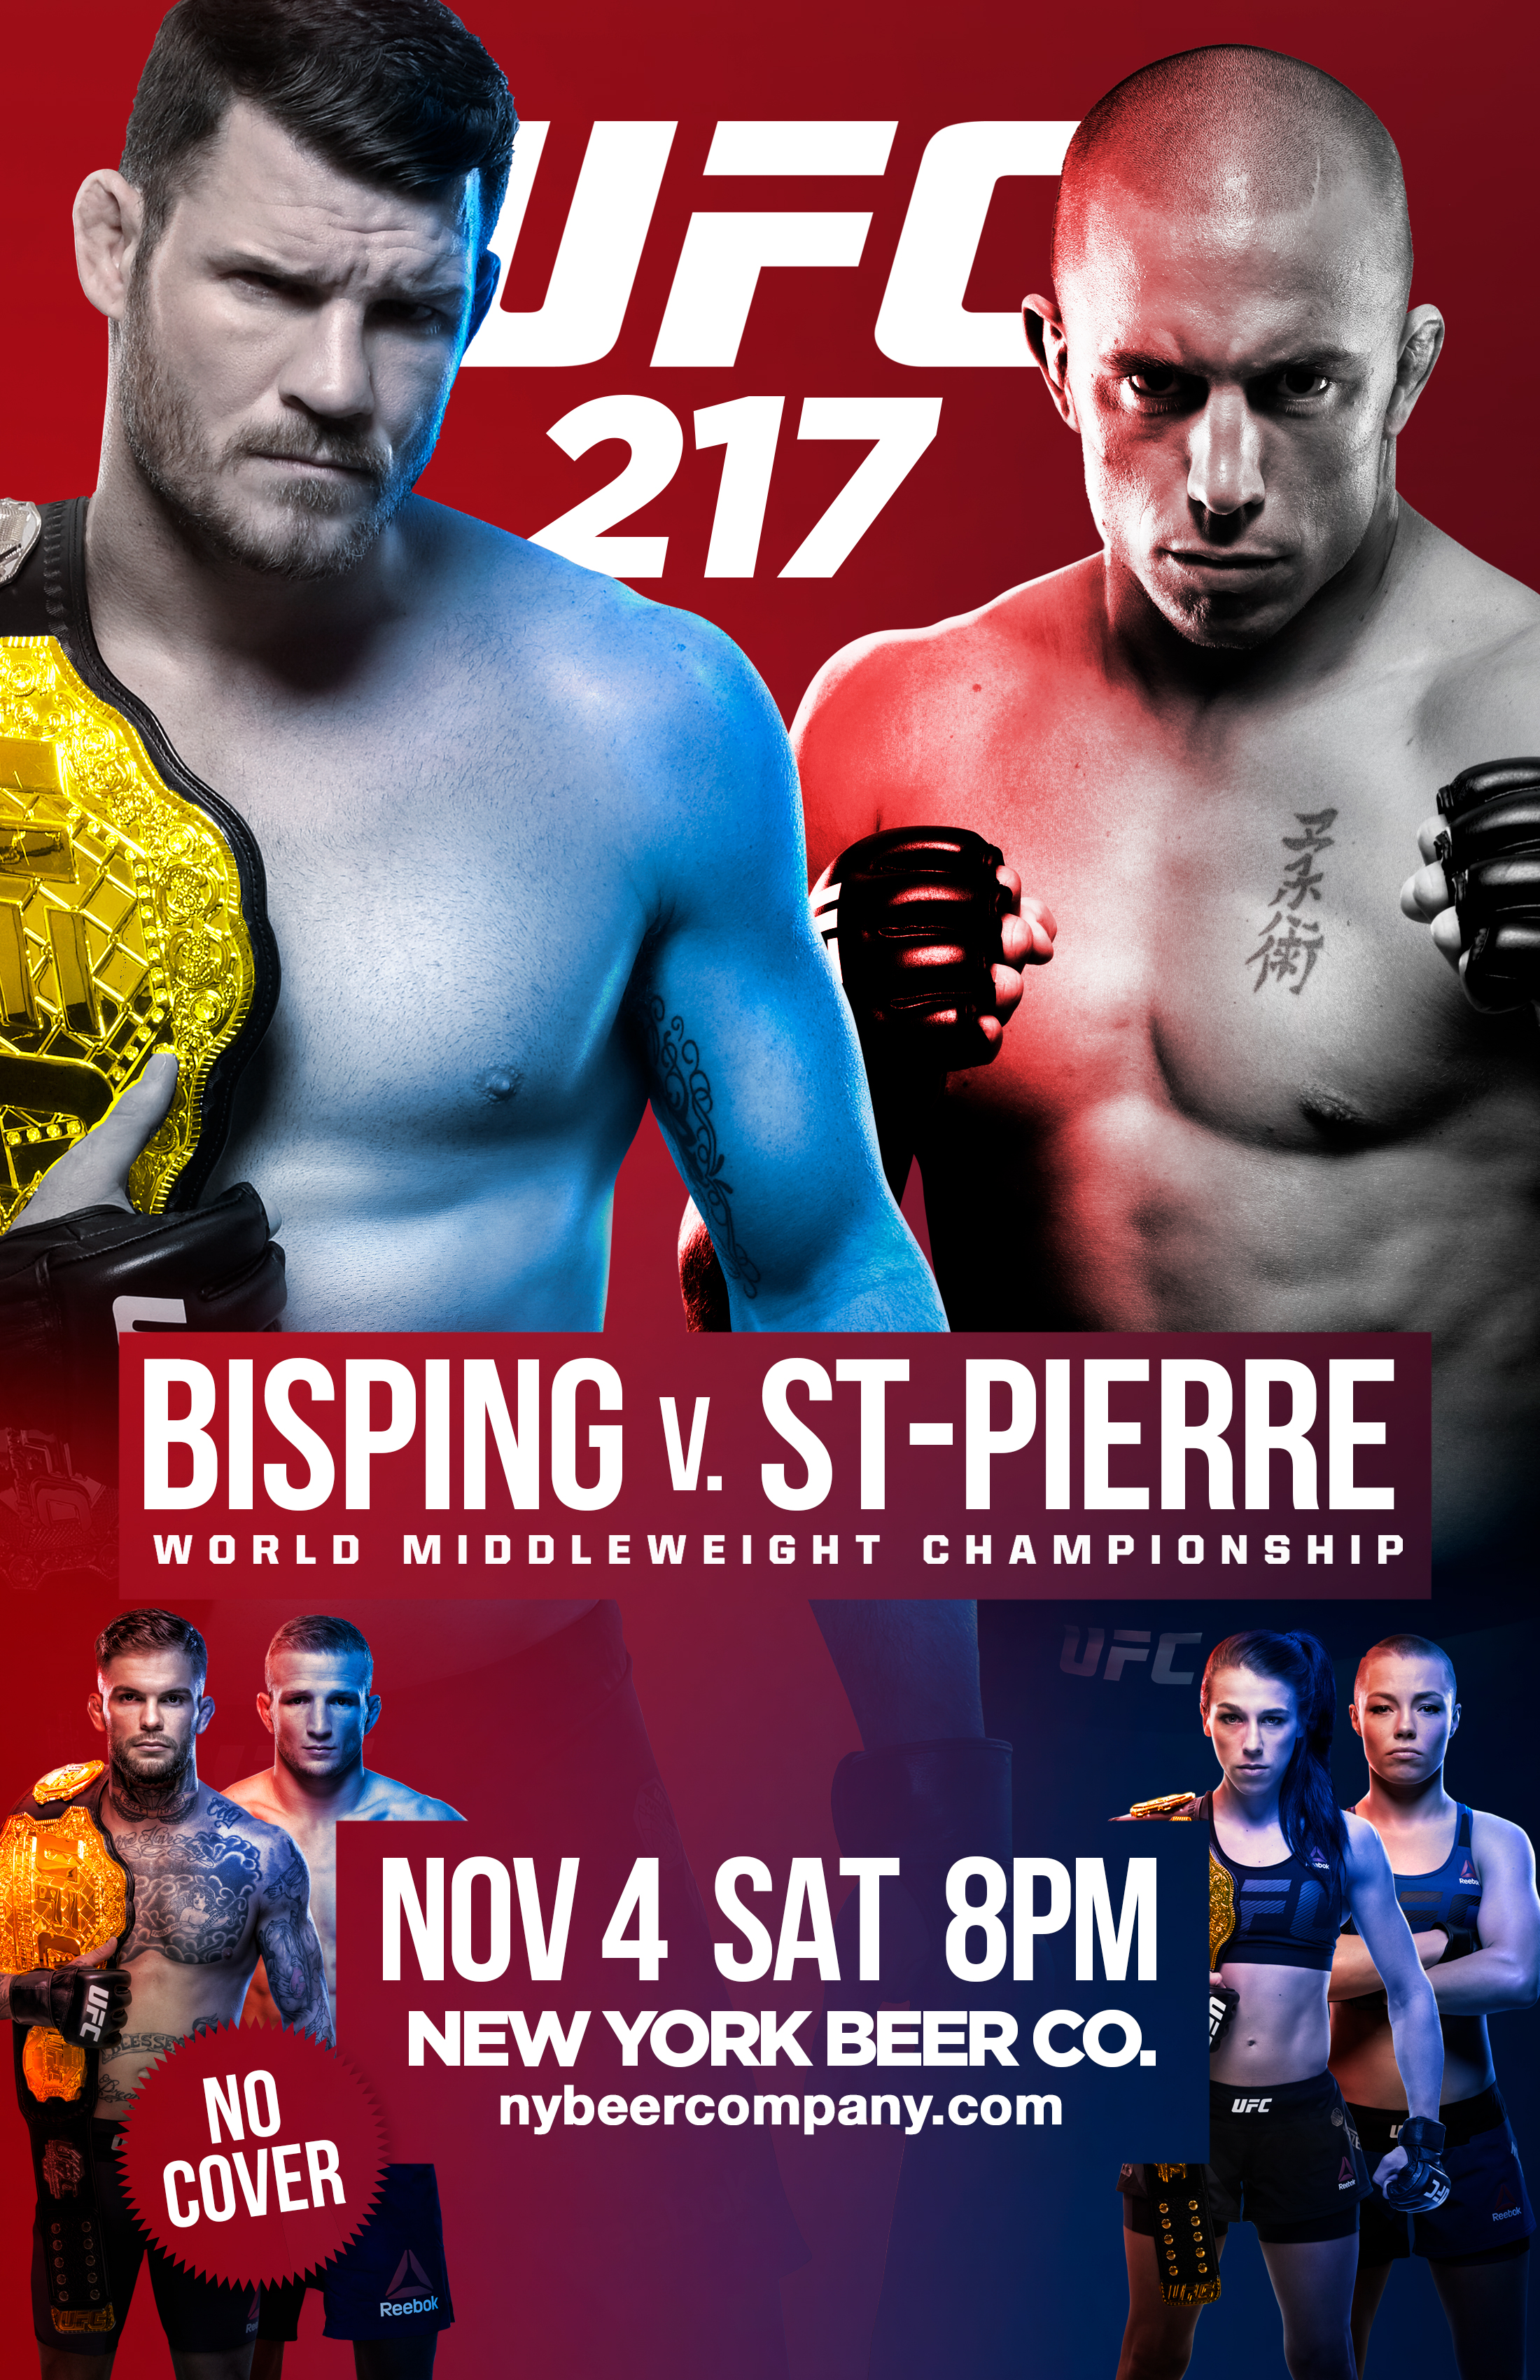 Watch UFC 217 in NYC